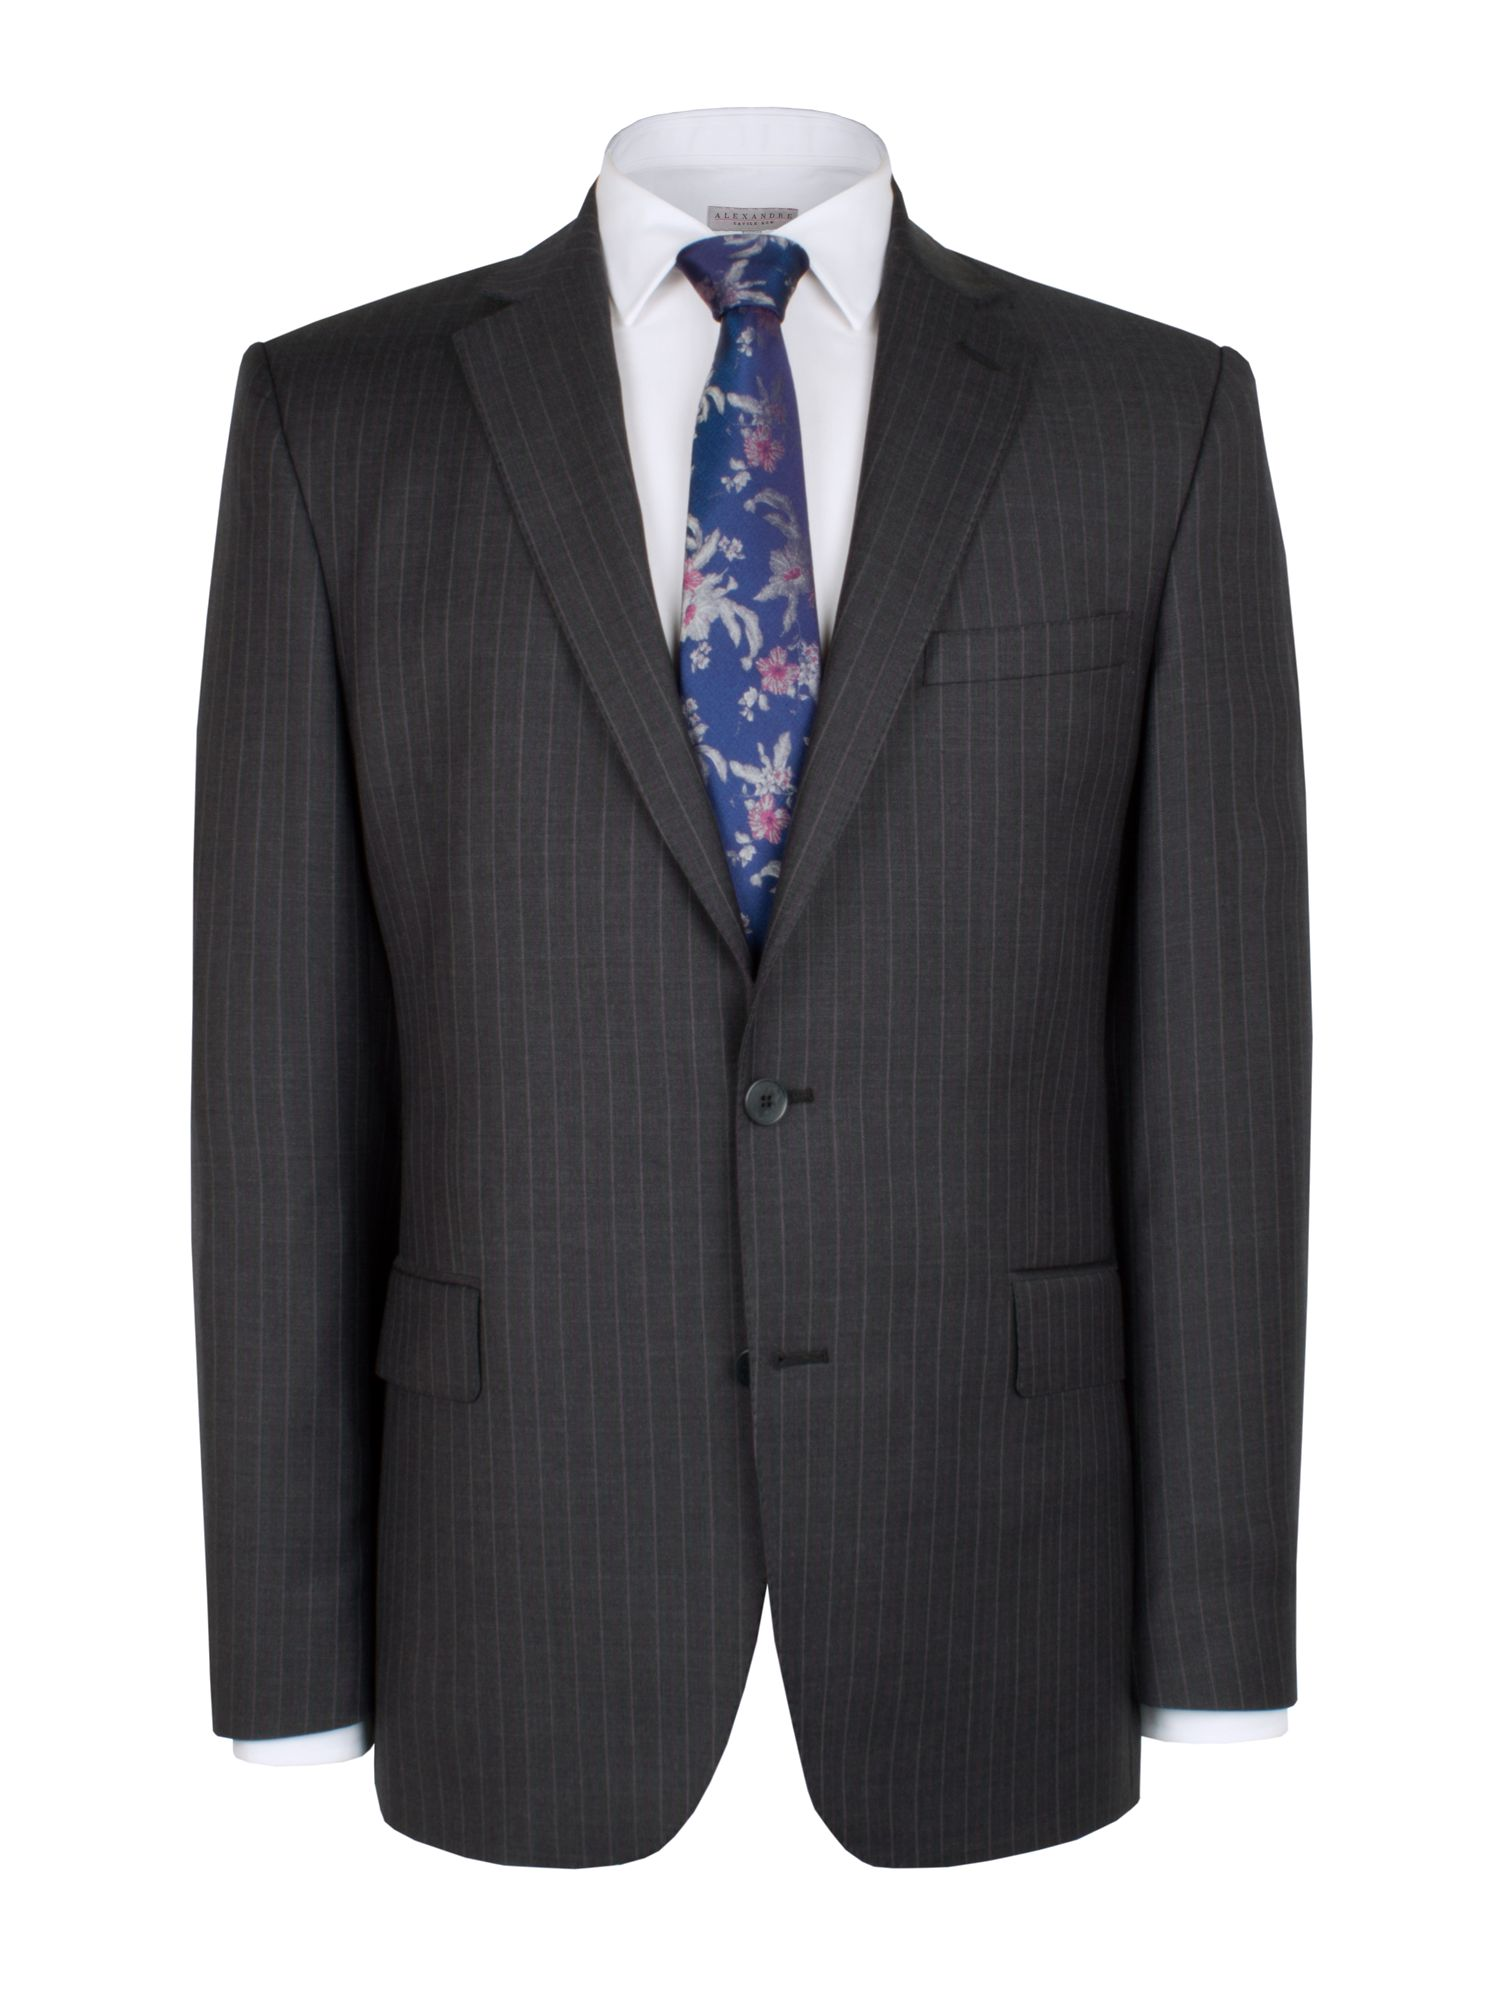 Grey purple pinstripe suit